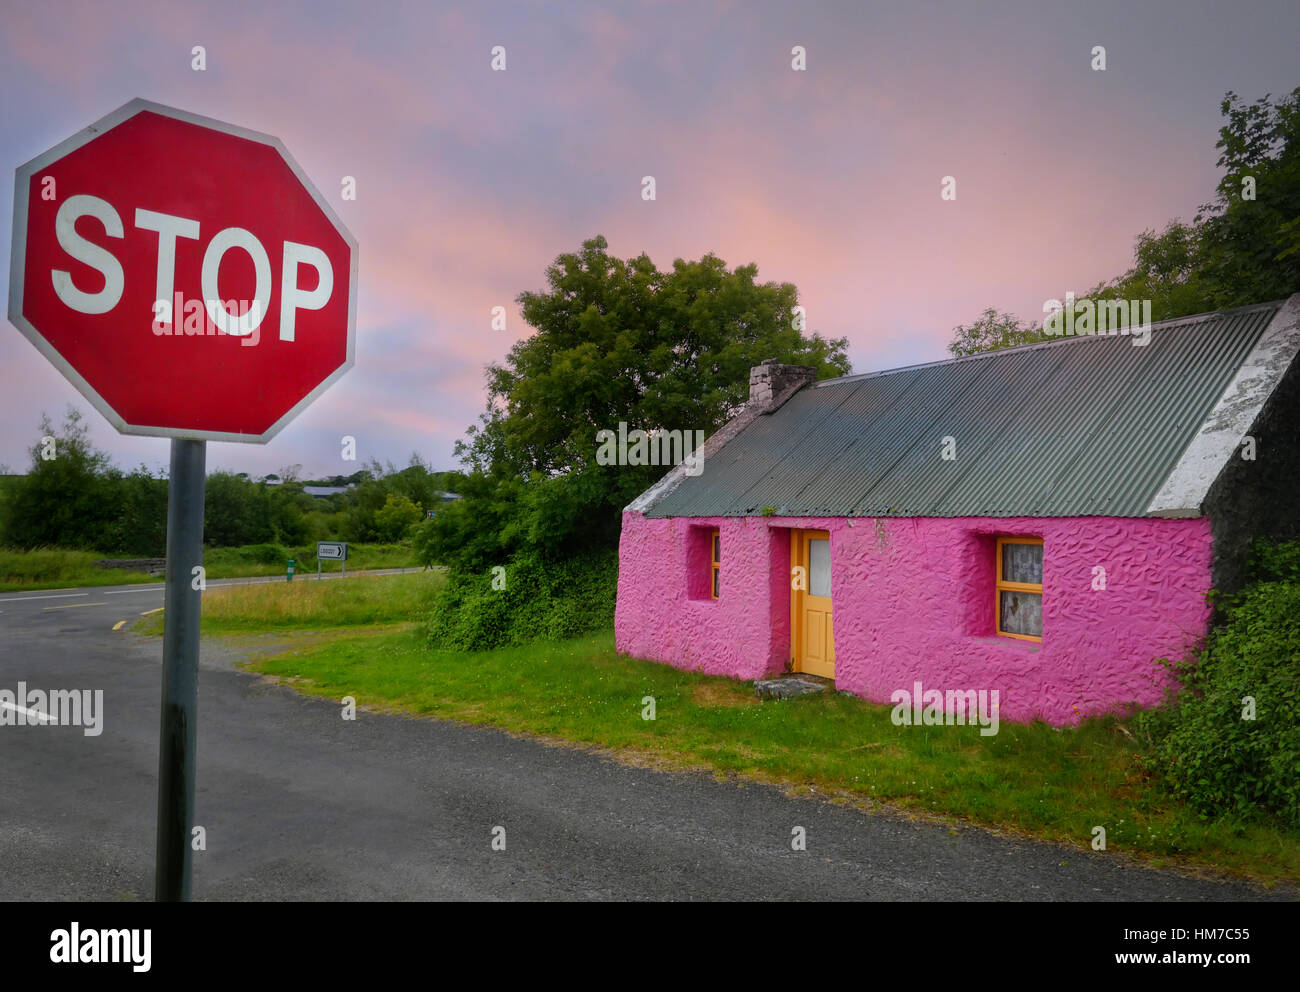 Pink cottage in rural Ireland. - Stock Image